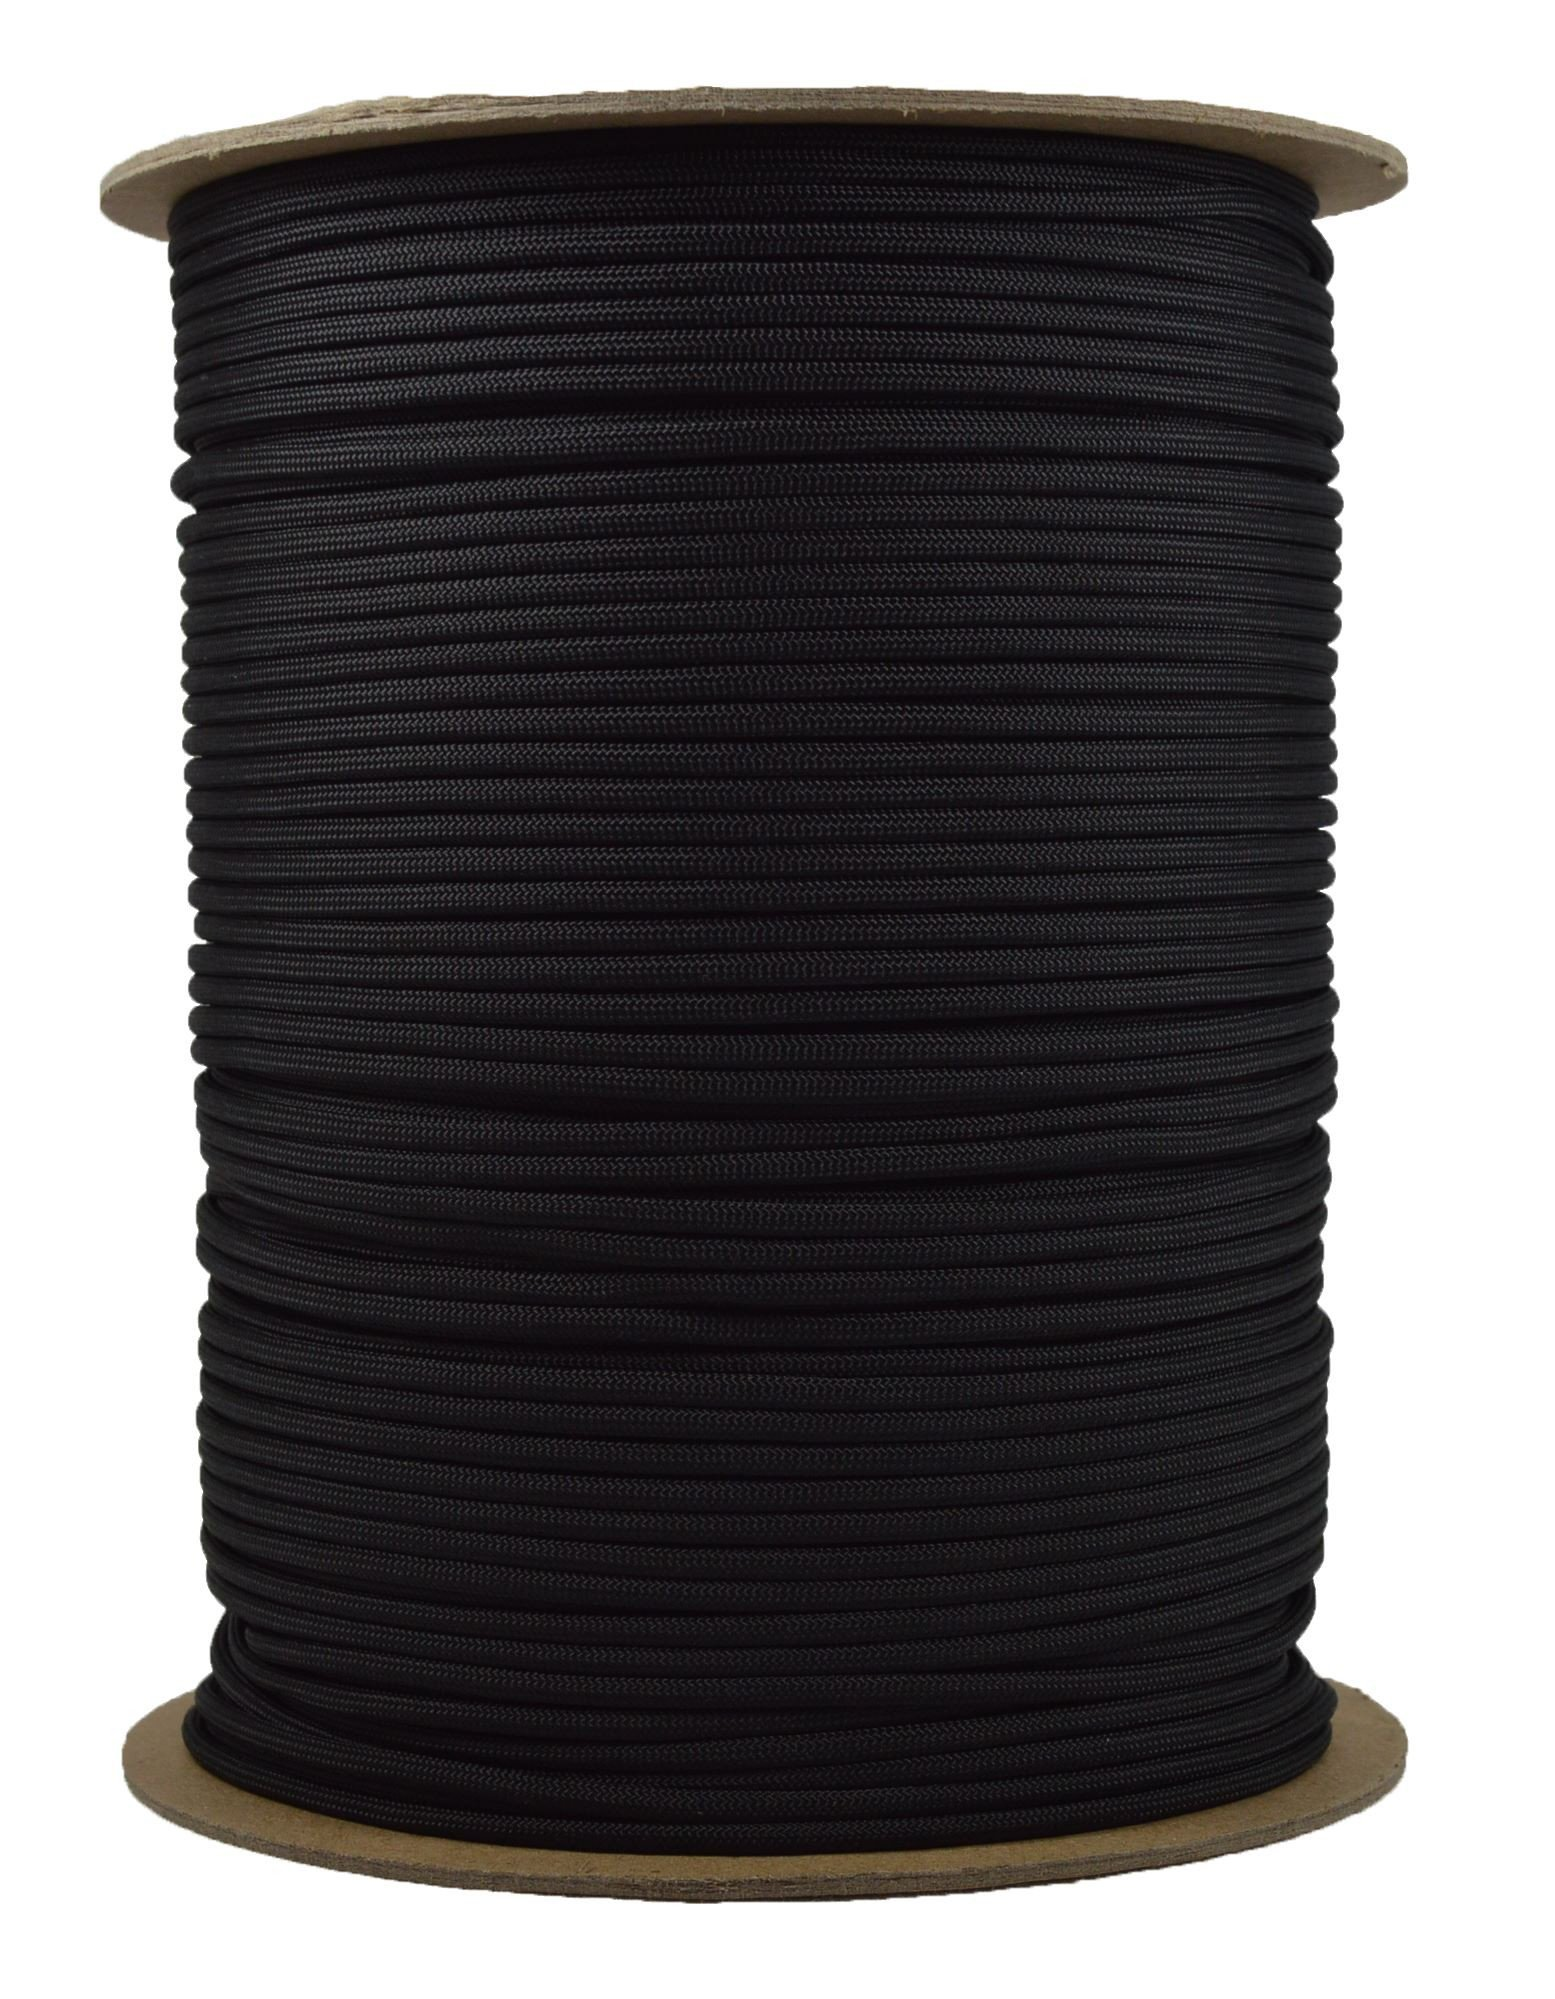 1000 Foot Spools of Parachute 550 Cord Type III 7 Strand Paracord Black